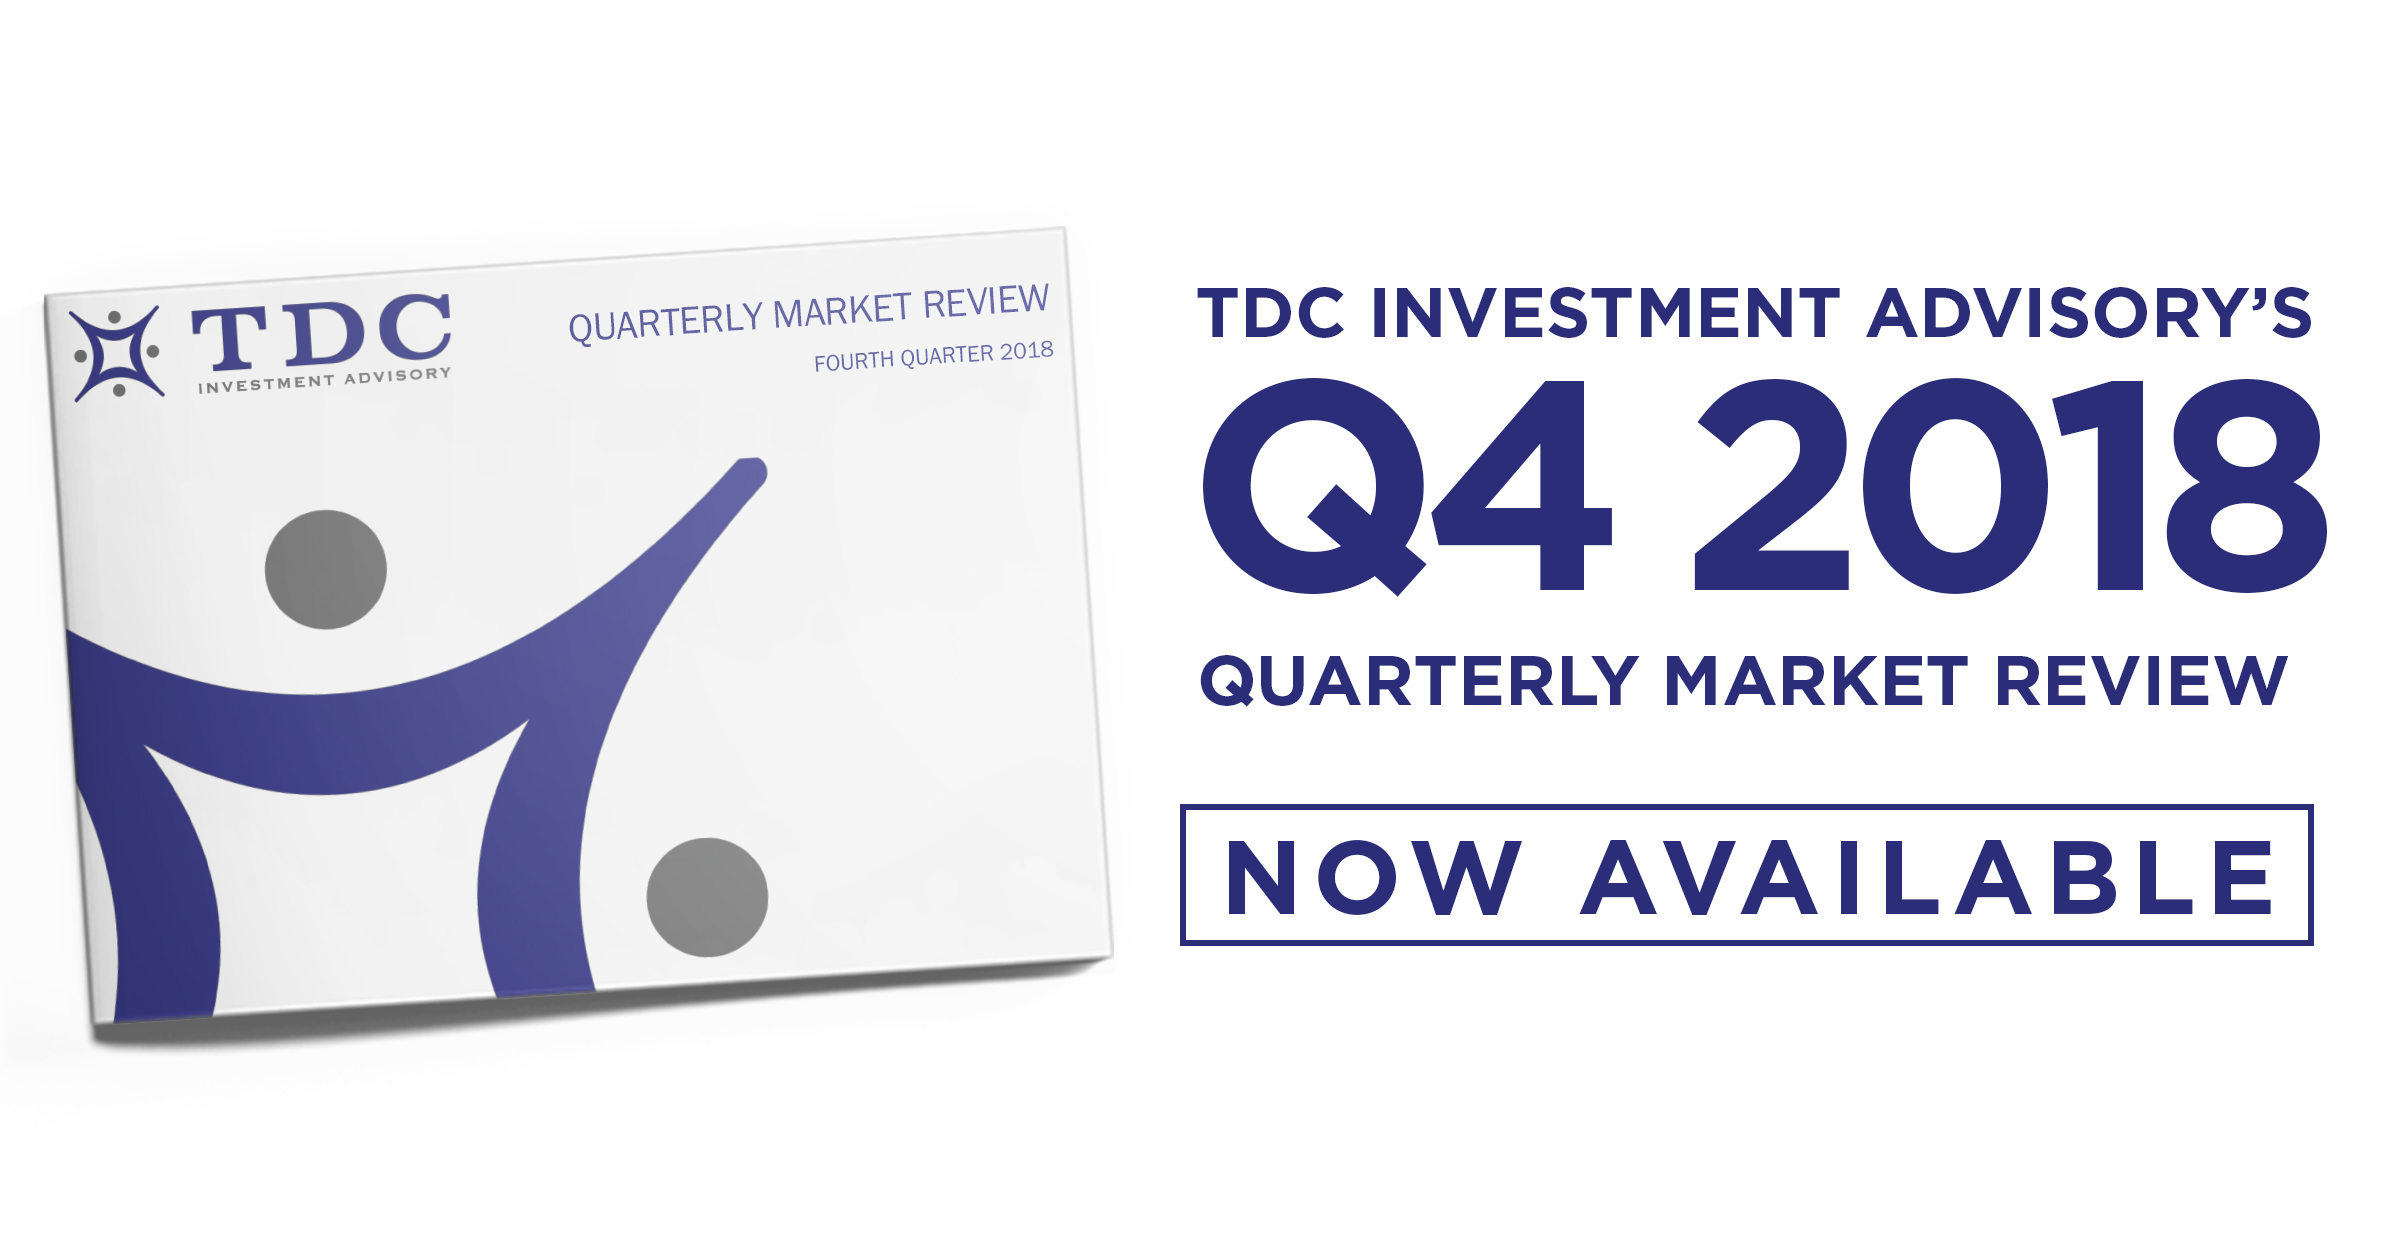 TDC's 2018 Annual Market Review Now Available